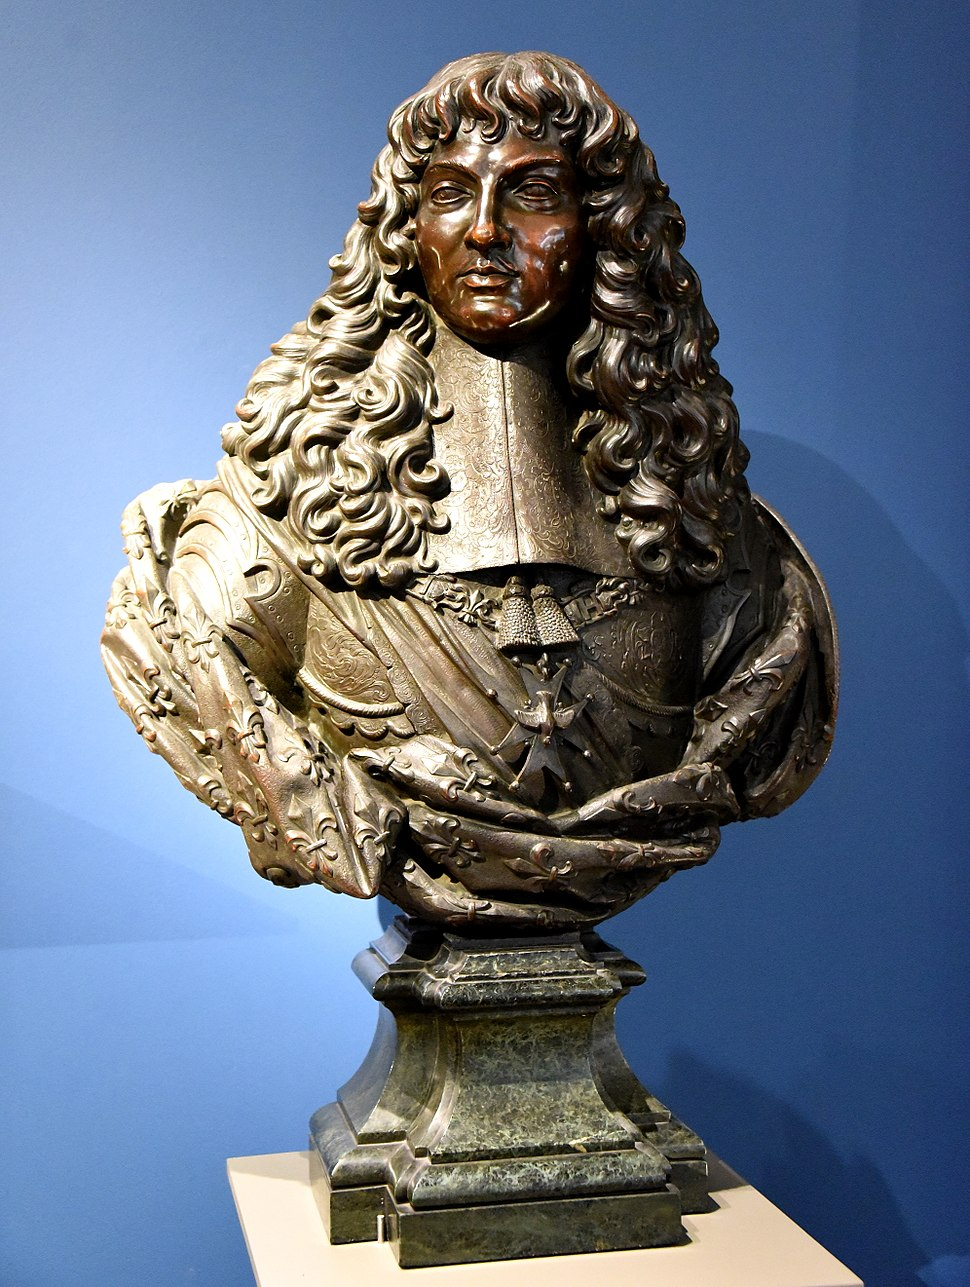 Bronze bust of Louis XIV. Circa 1660 CE, by unknown artist. From Paris, France. The Victoria and Albert Museum, London